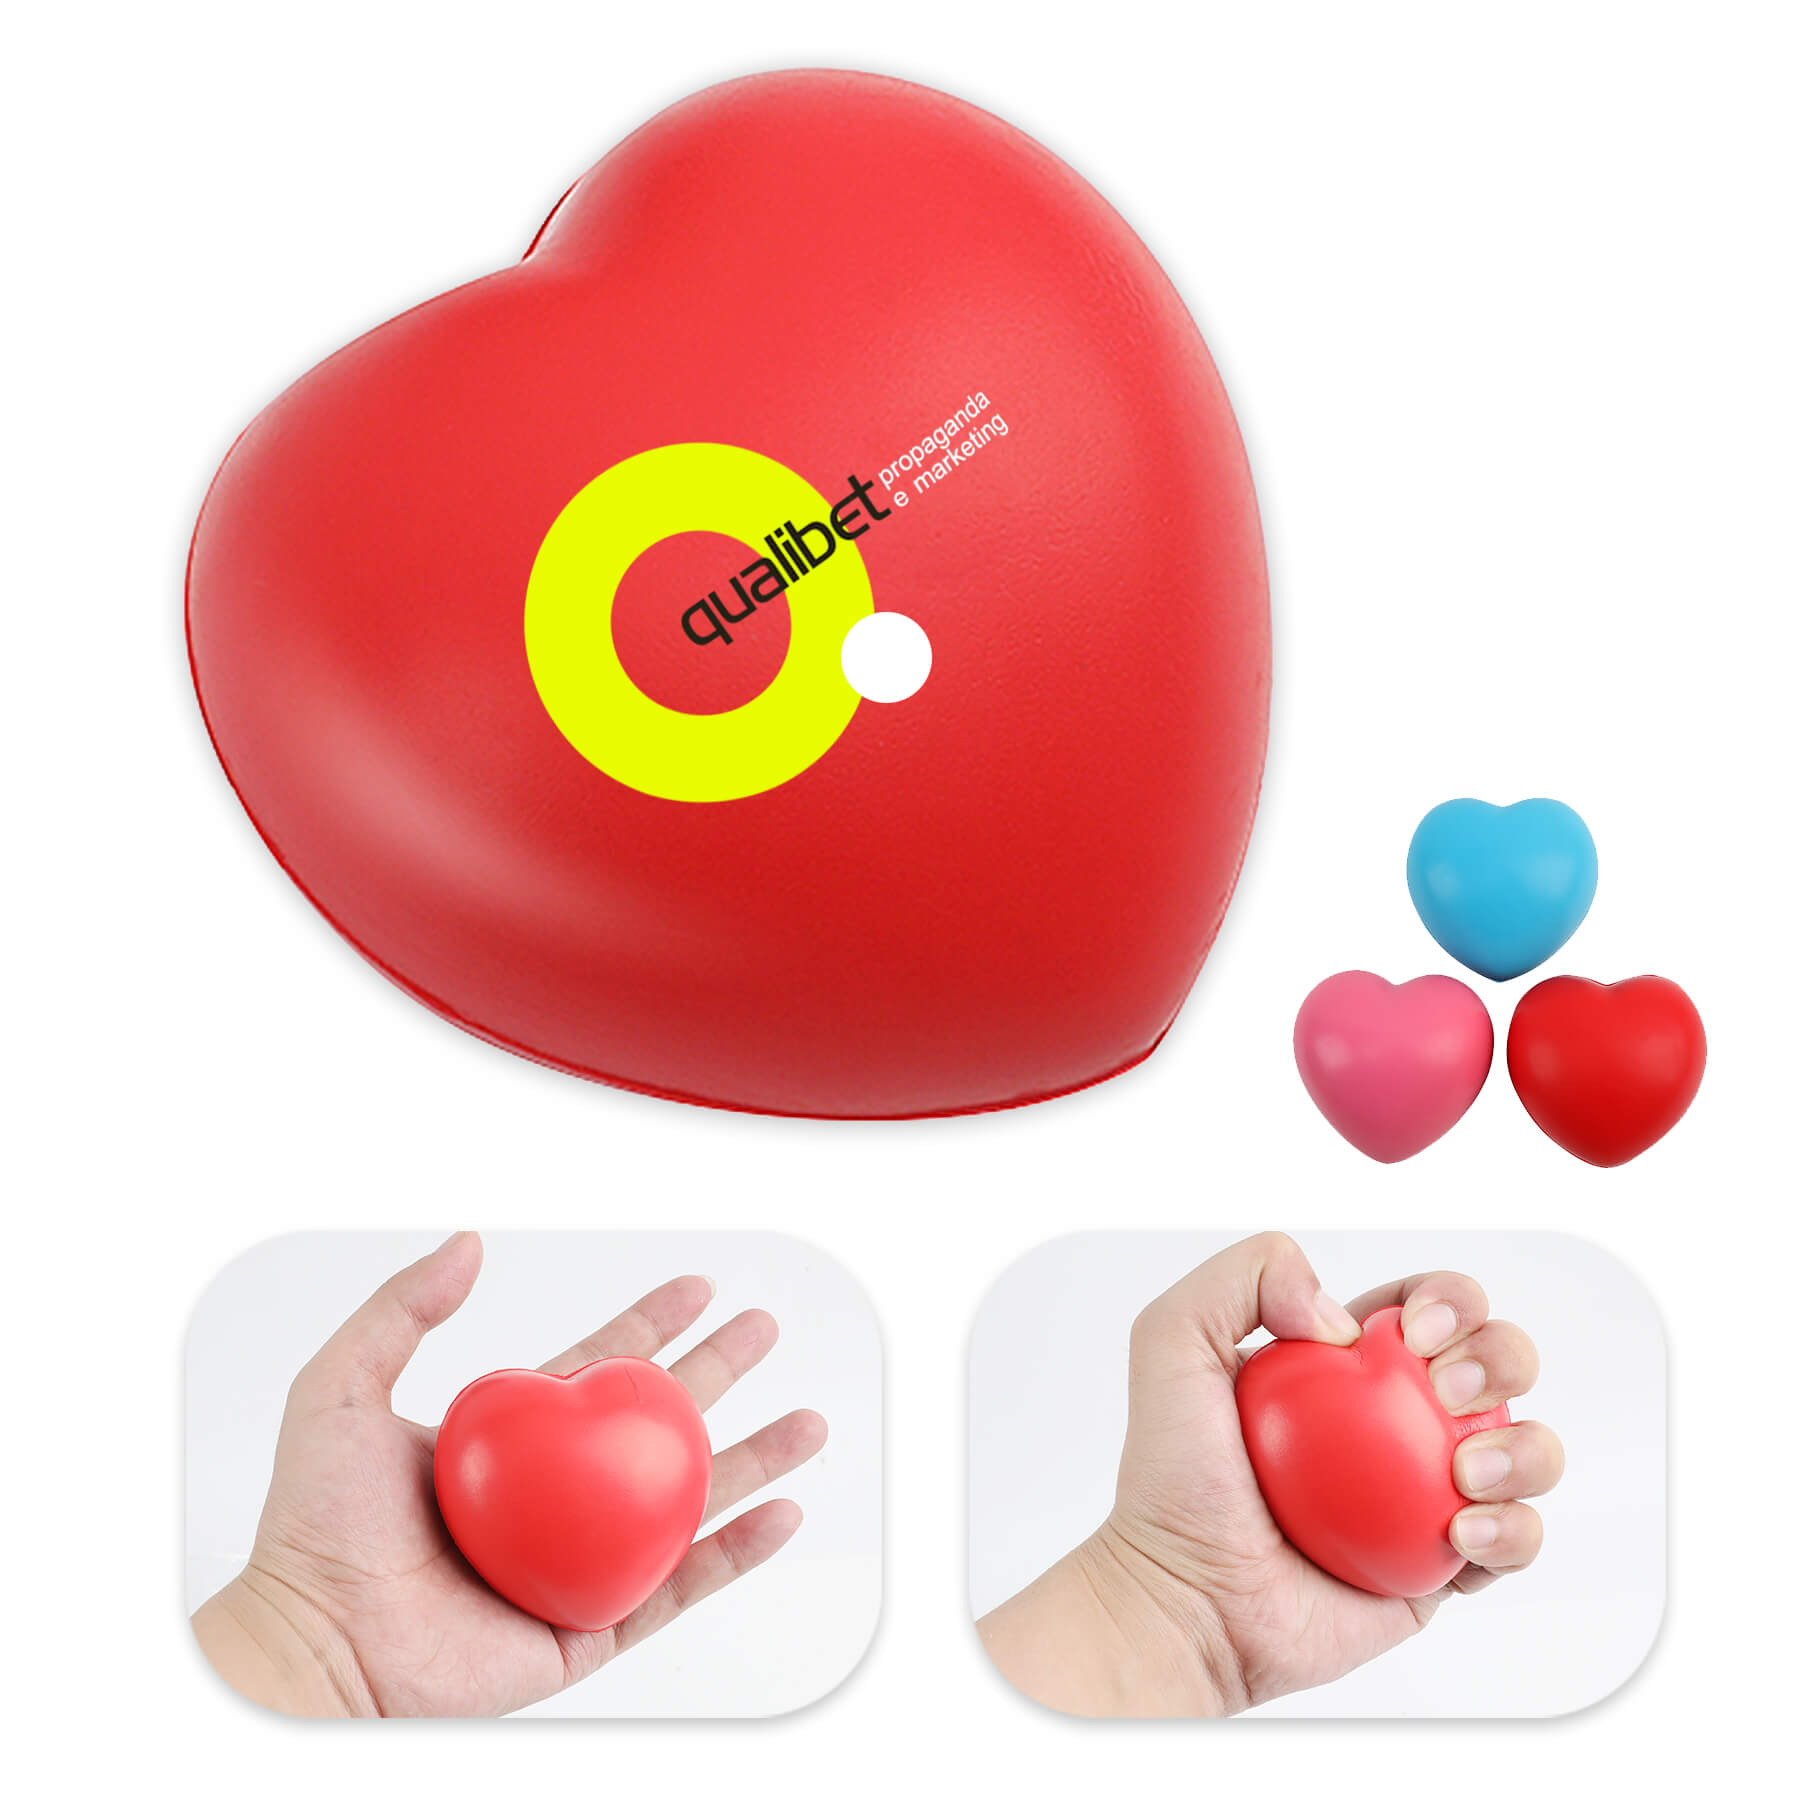 Heart Shaped Stress Reliever Squeeze Ball - Heart Shaped Stress Reliever Squeeze Ball